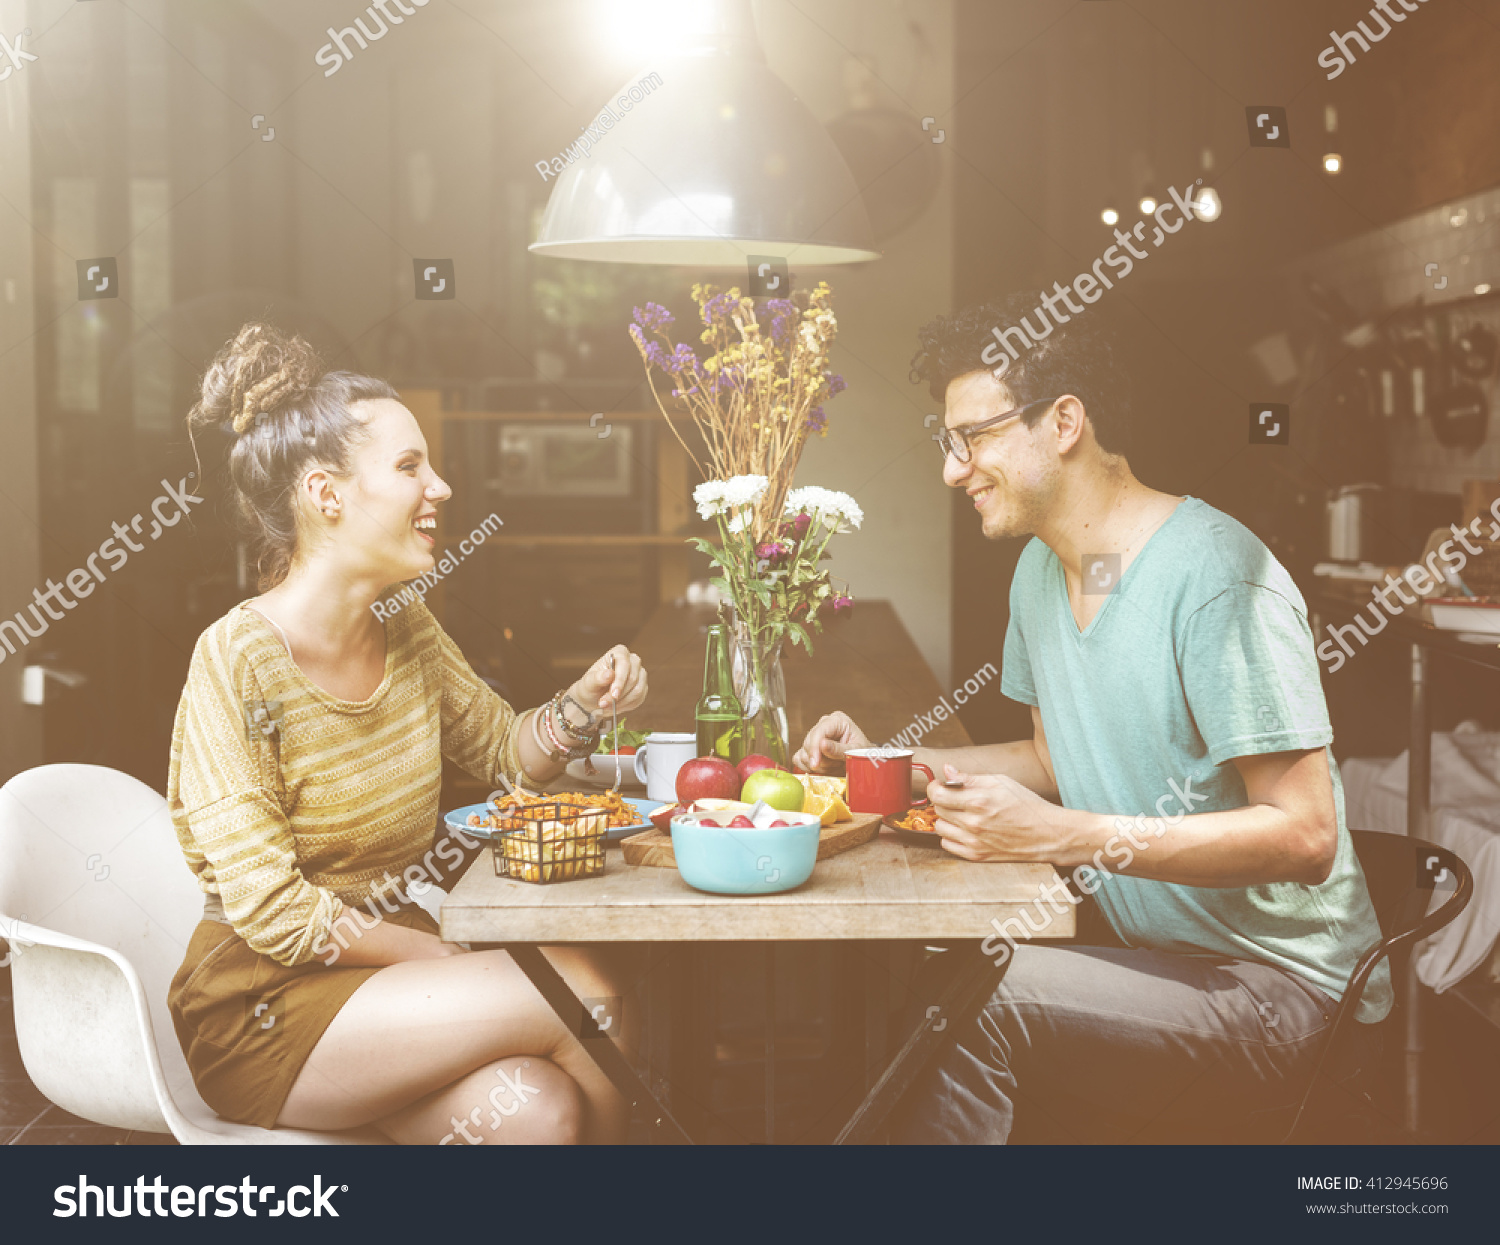 dating websites for food lovers Start online dating with match uk sign up for free and get access to dating profiles of singles, take the opportunity to attend match singles nights and other dating.